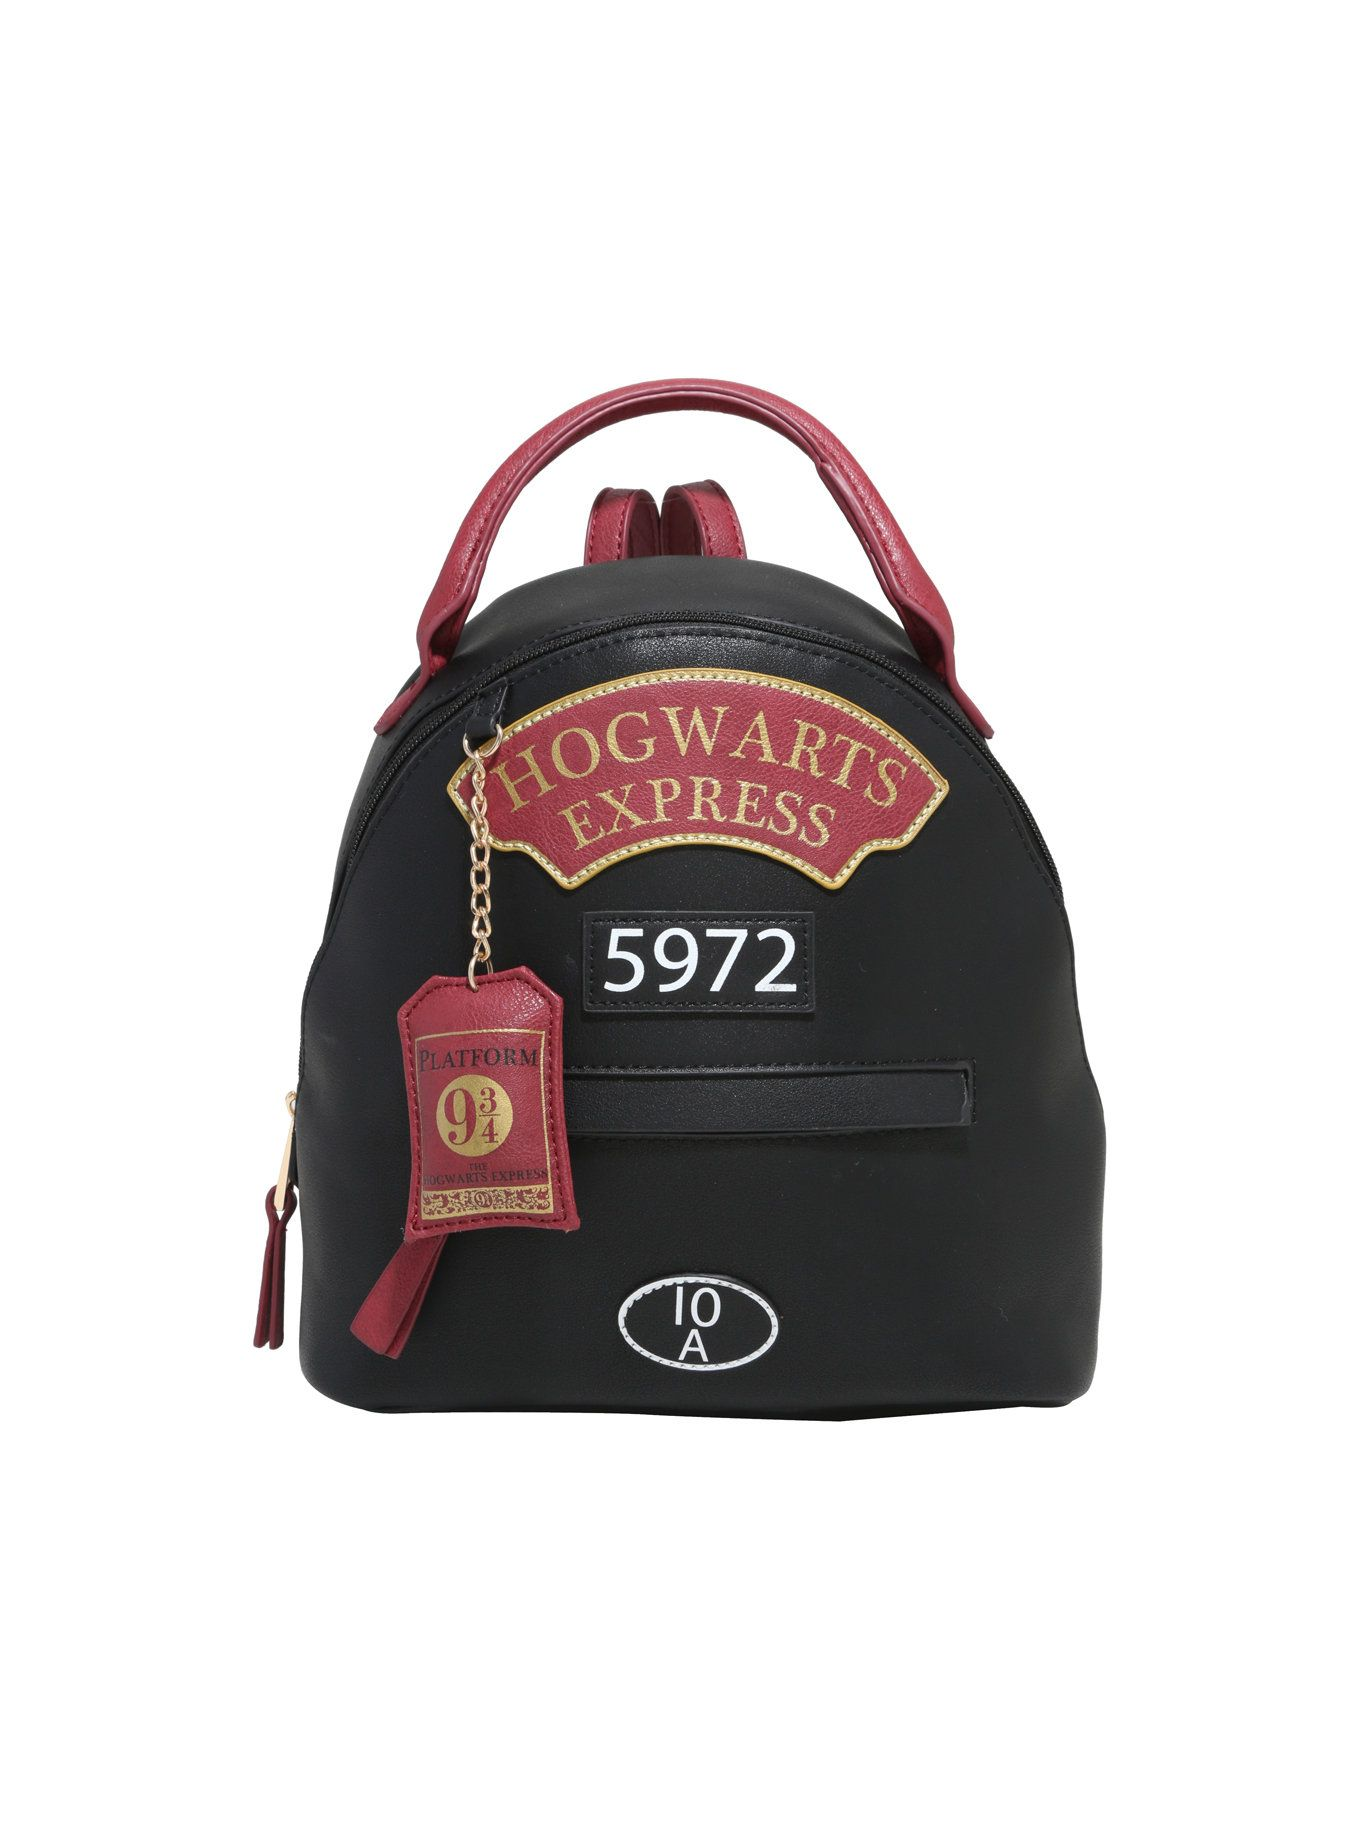 66d3d85c056 Harry Potter Hogwarts Express Mini Backpack